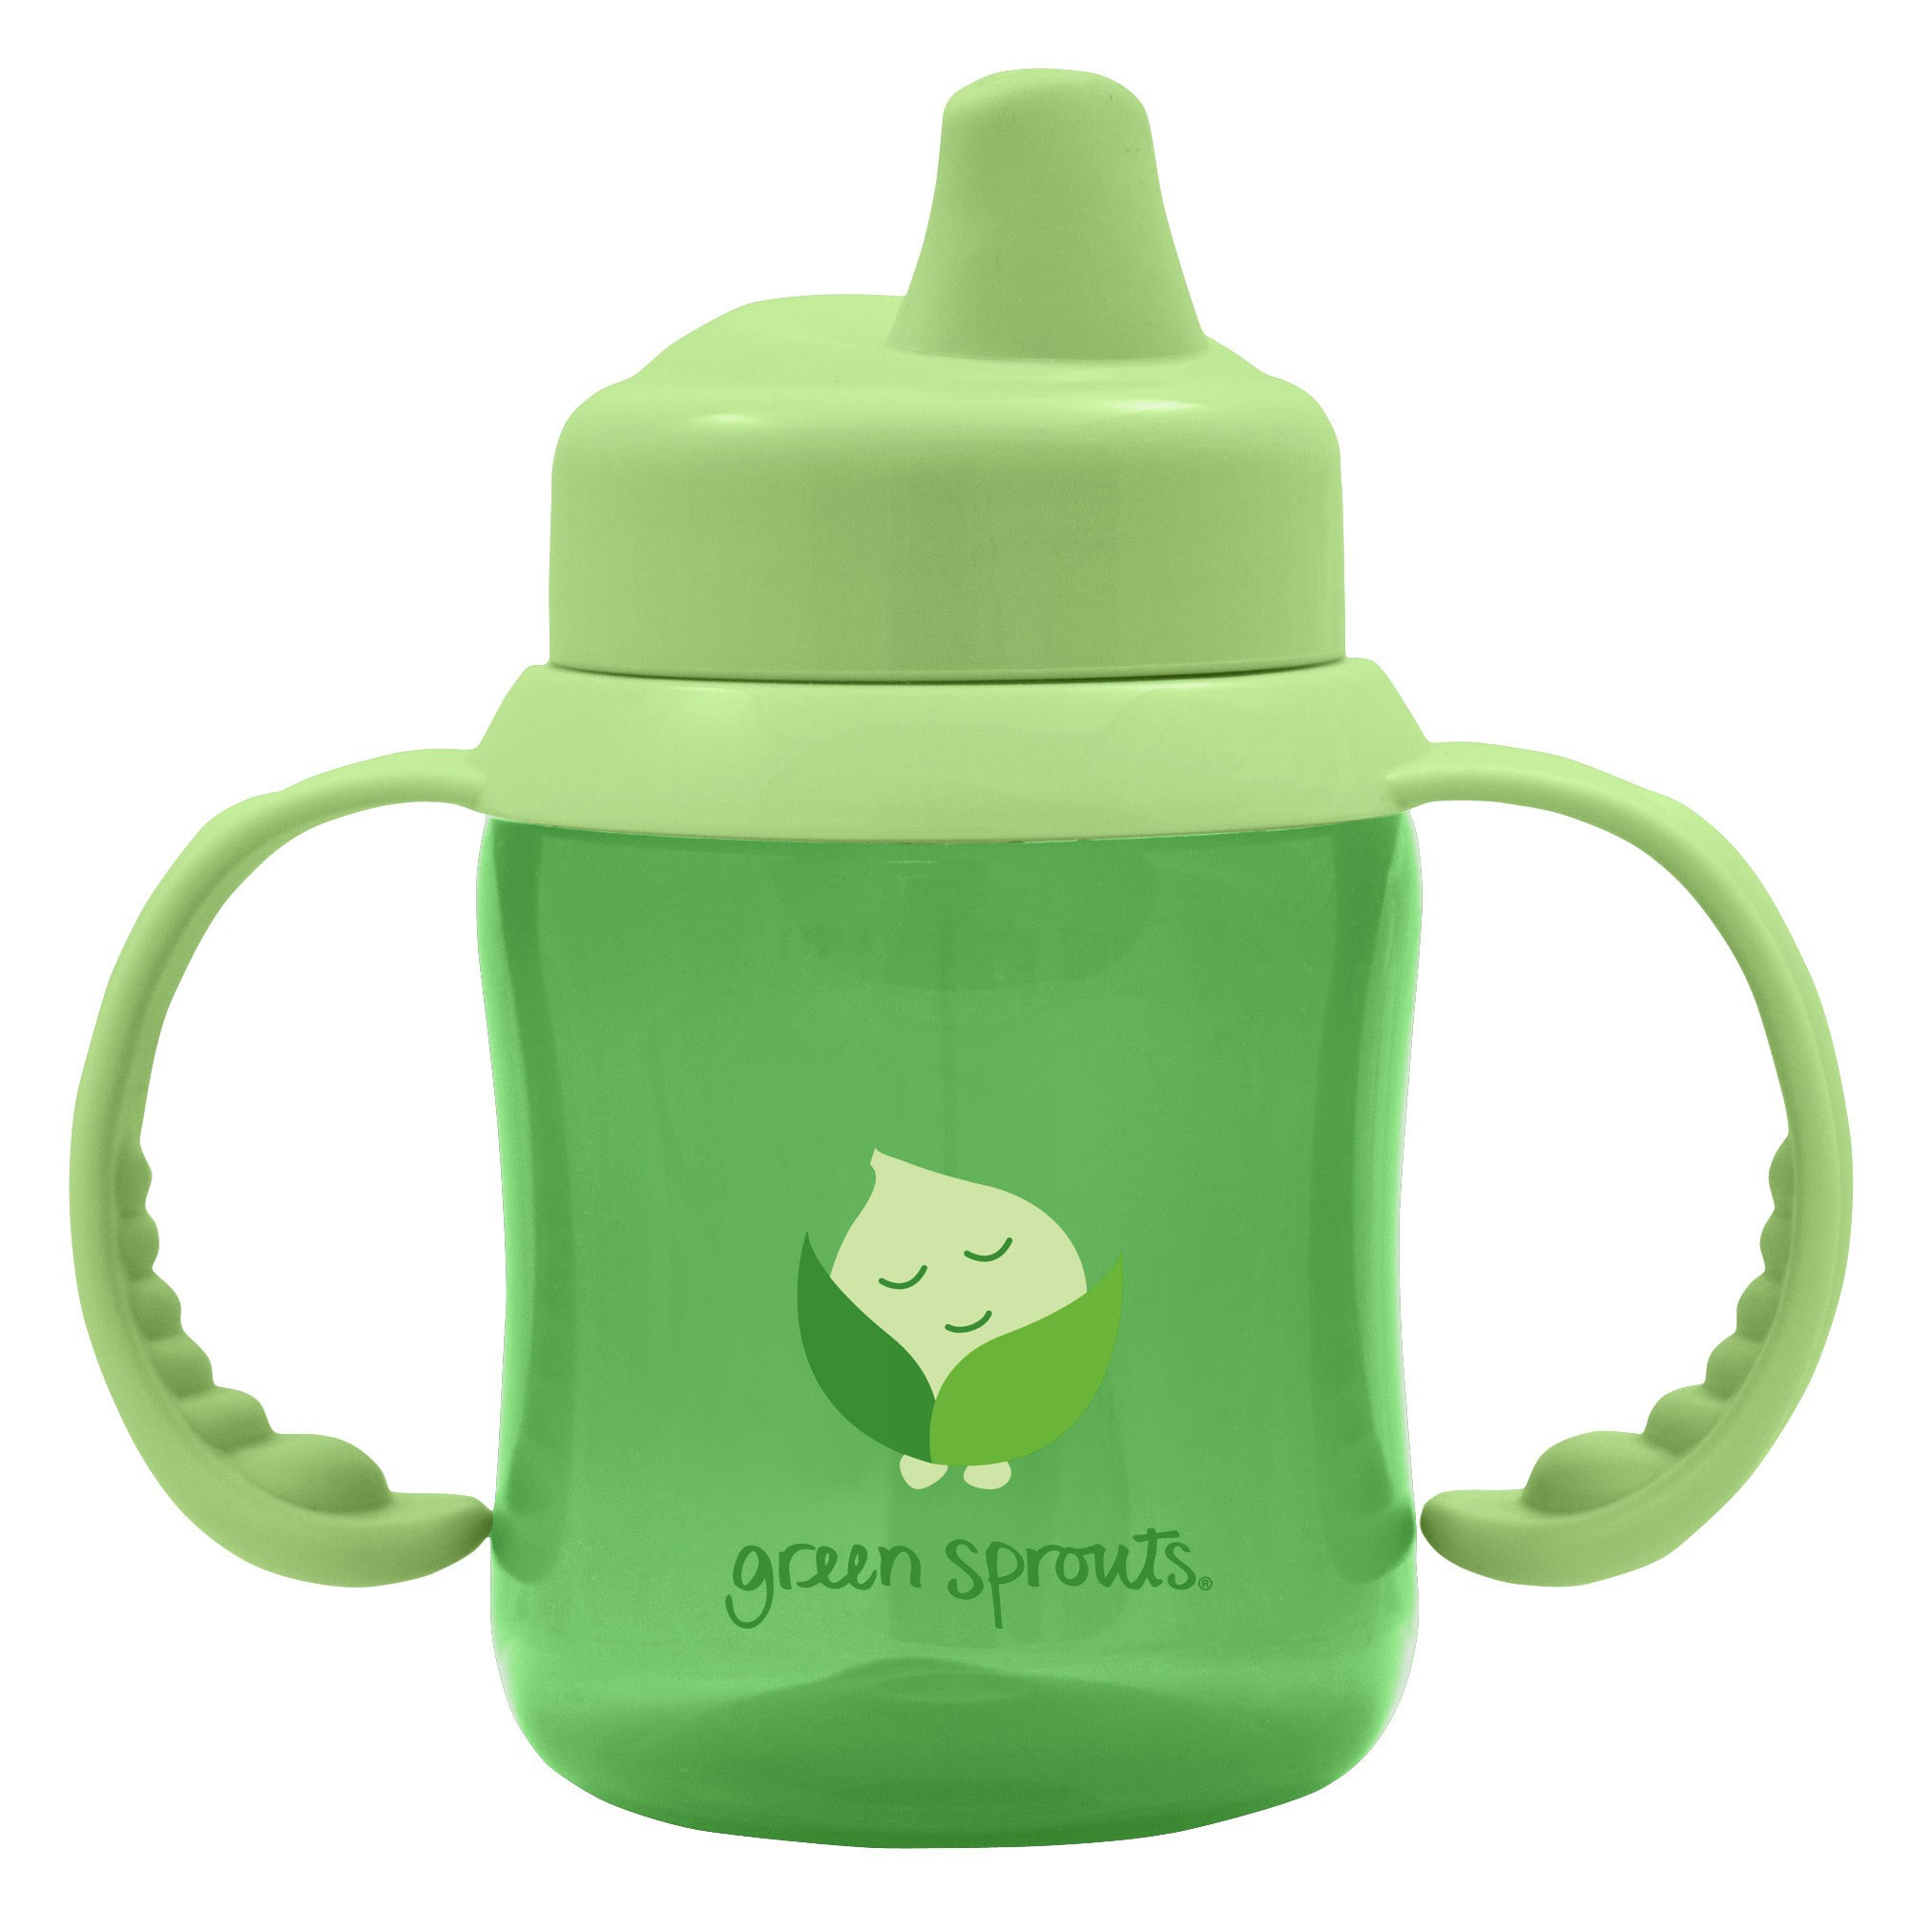 iPlay Green Sprouts Non-Spill Sippy Cup in Green